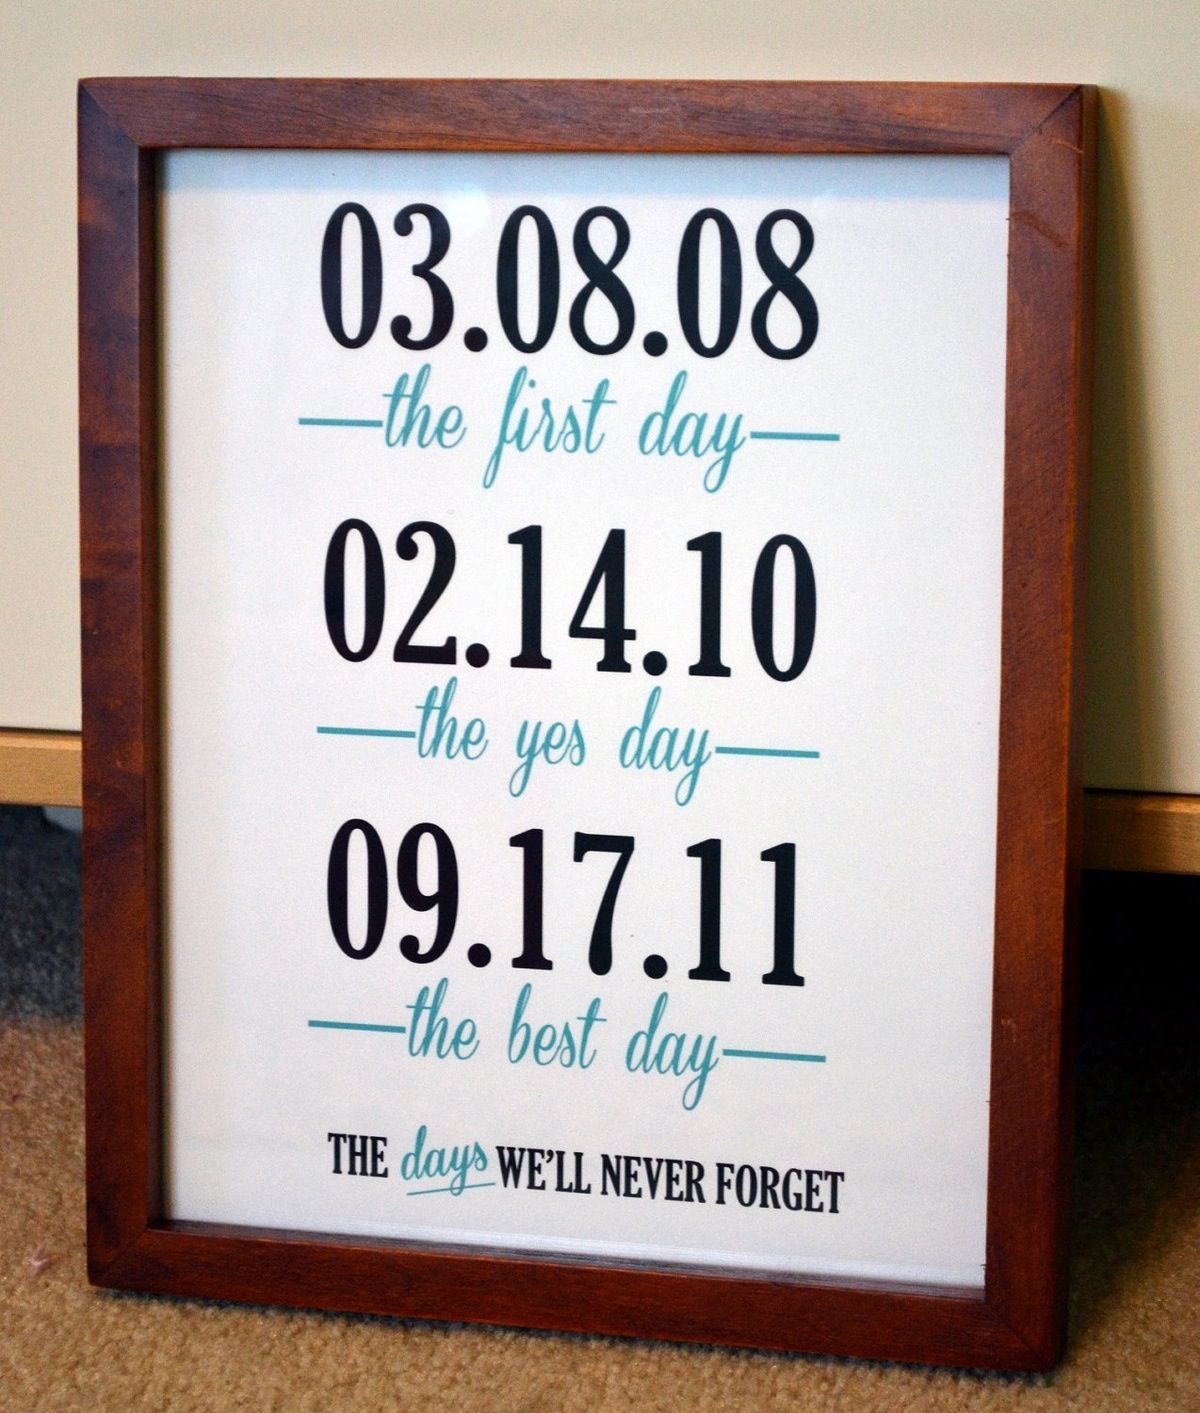 Important Dates Frame Love This Idea I Would Love To Do One For Our First Date Engage Engagement Party Gifts Anniversary Gifts For Husband Gifts For Husband